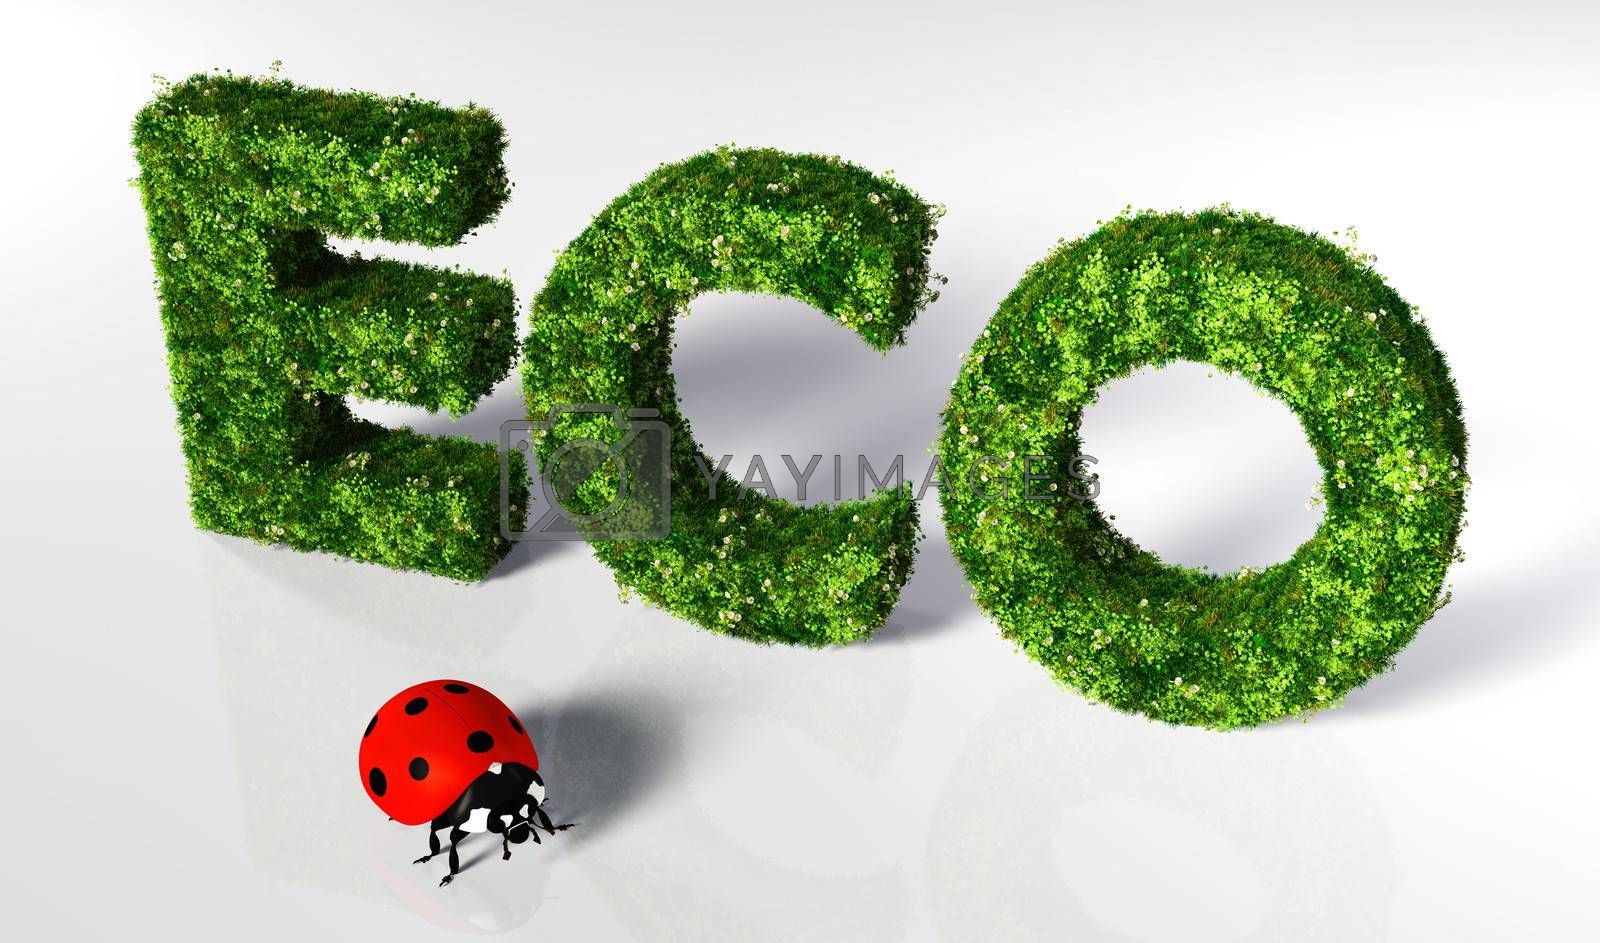 eco text covered by grass and flowers, and a small ladybug in front of it are on a white ground